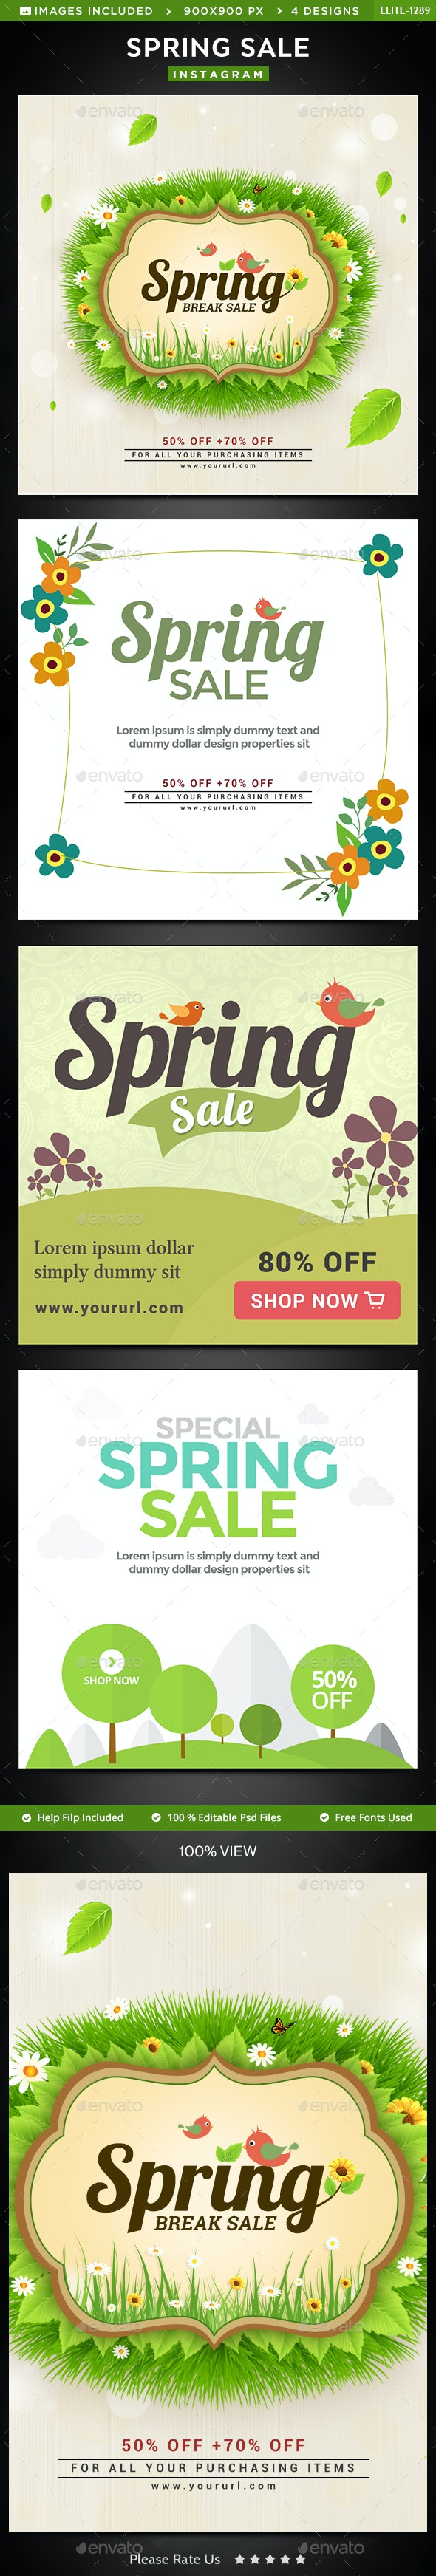 Spring Sale Instagram Templates - 4 Designs - Social Media Web Elements